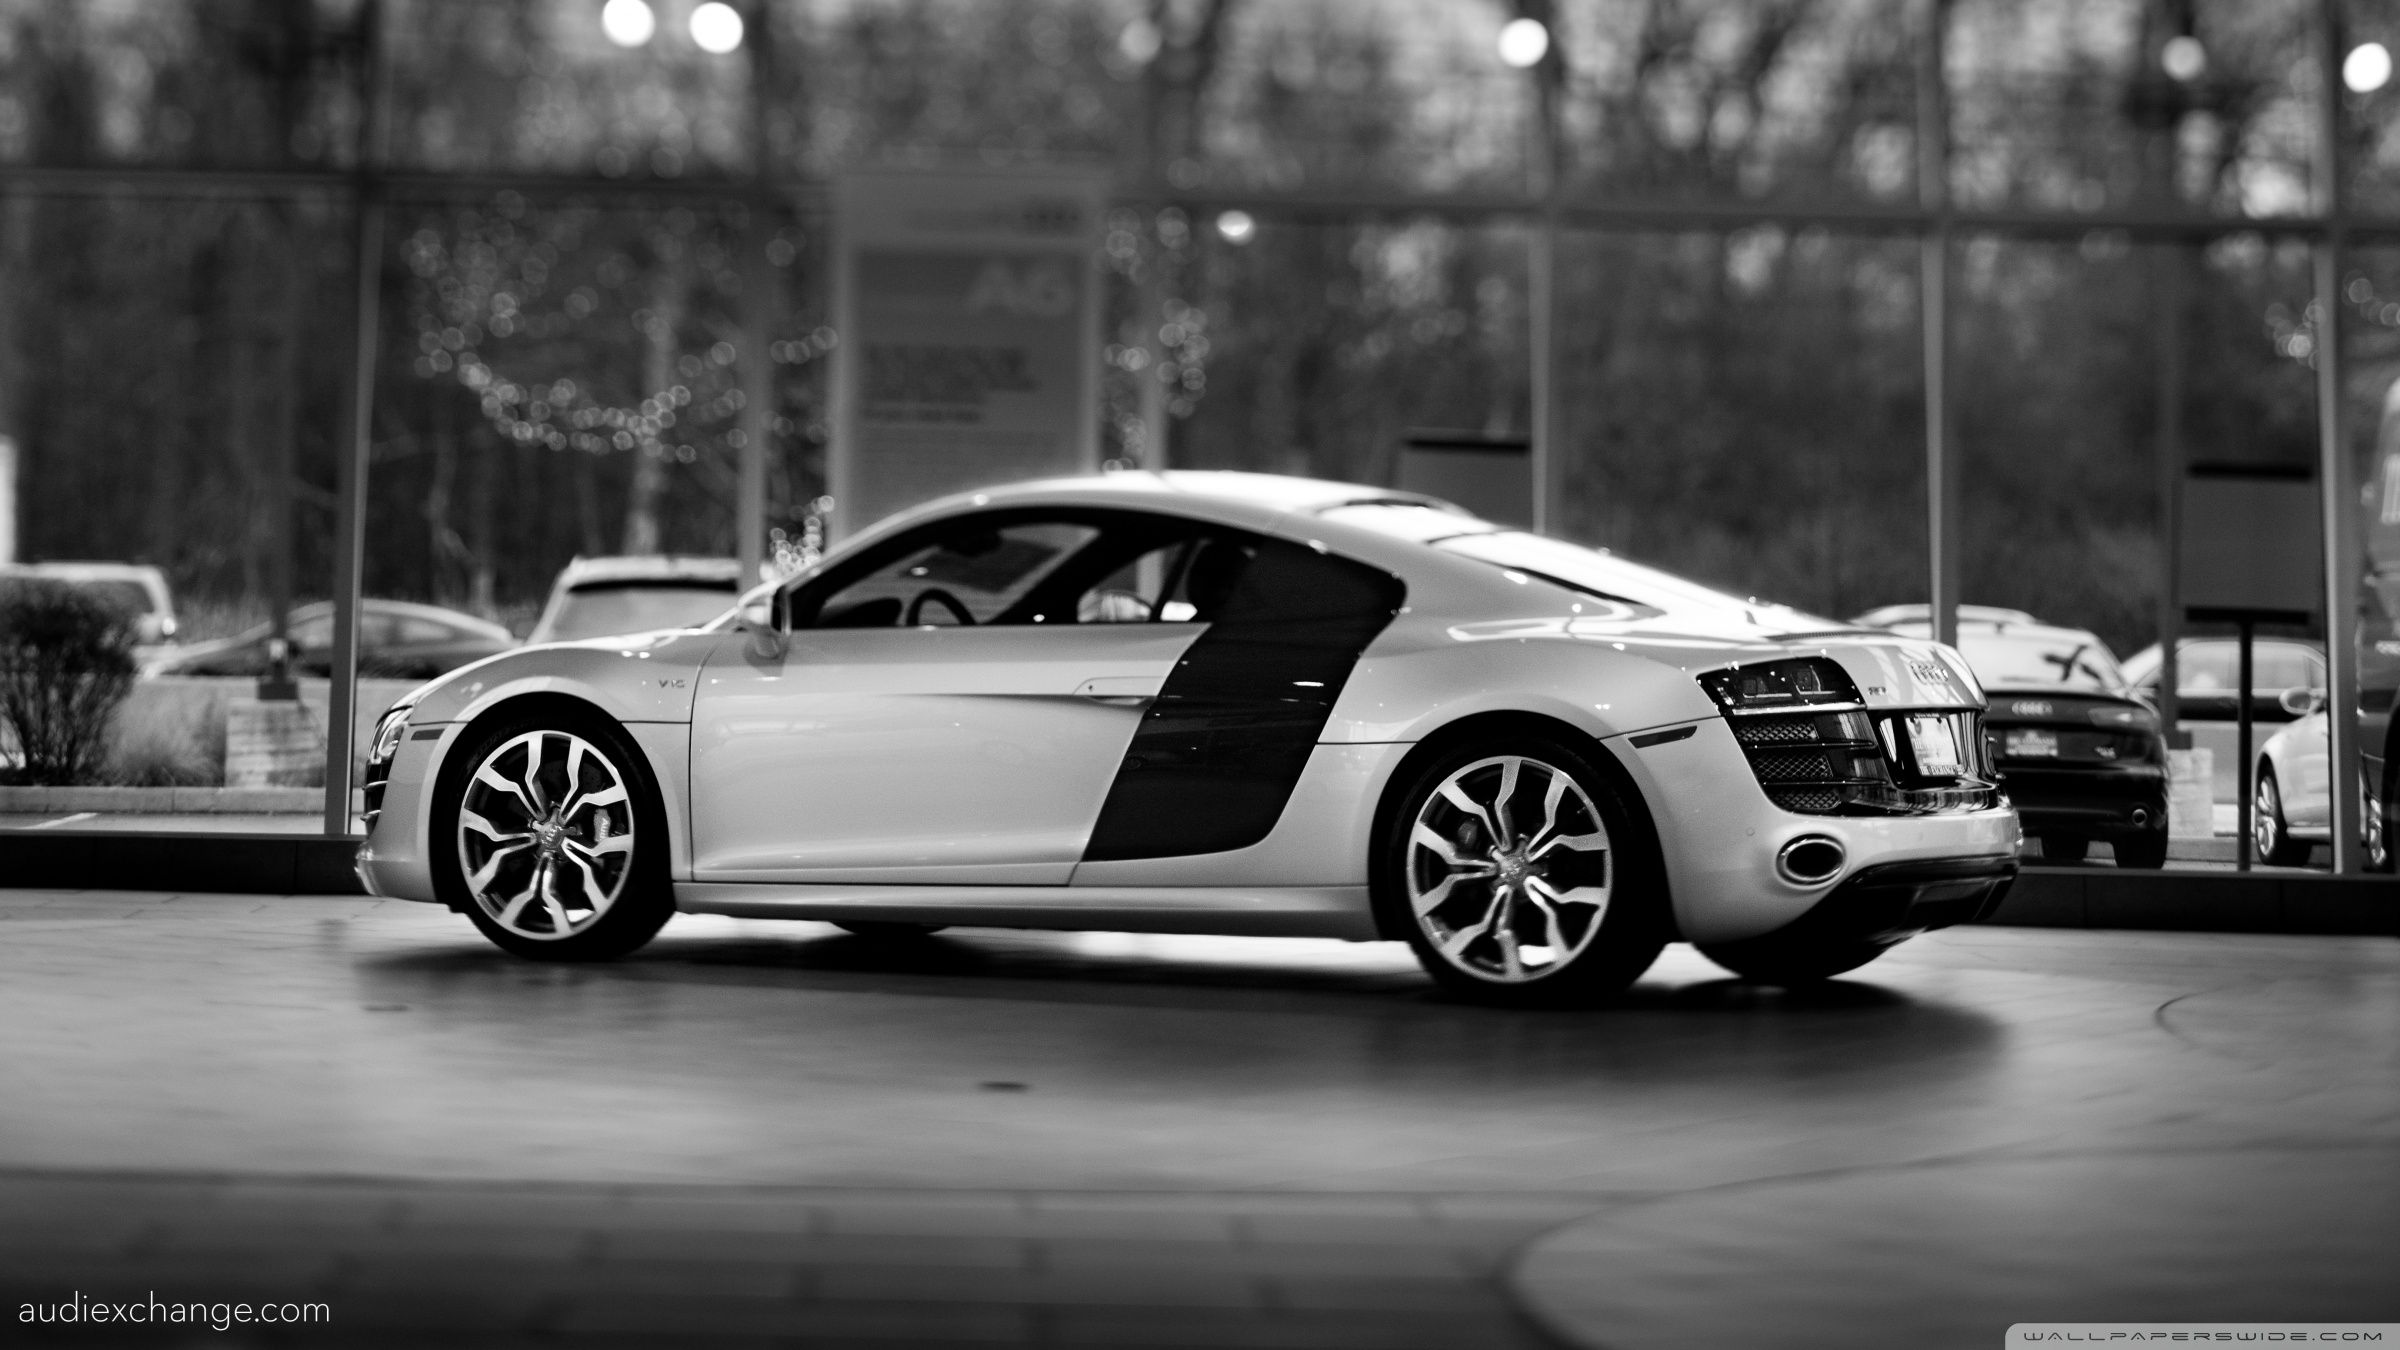 Pin By Sofia Castrillo On Cars And Morotcycles Audi R8 Wallpaper